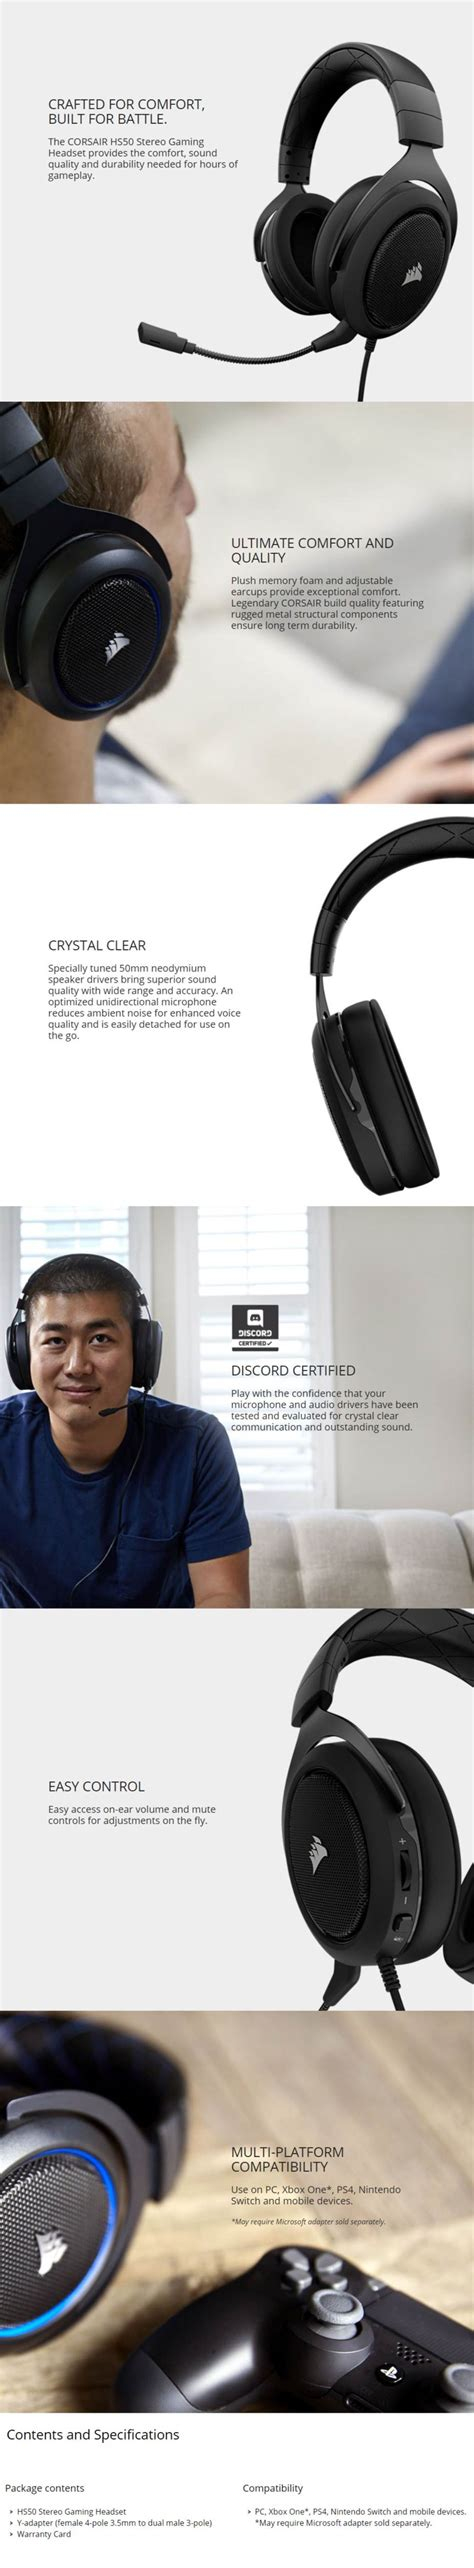 Corsair Hs50 Stereo Gaming Headset Carbon corsair hs50 stereo gaming headset carbon ca 9011170